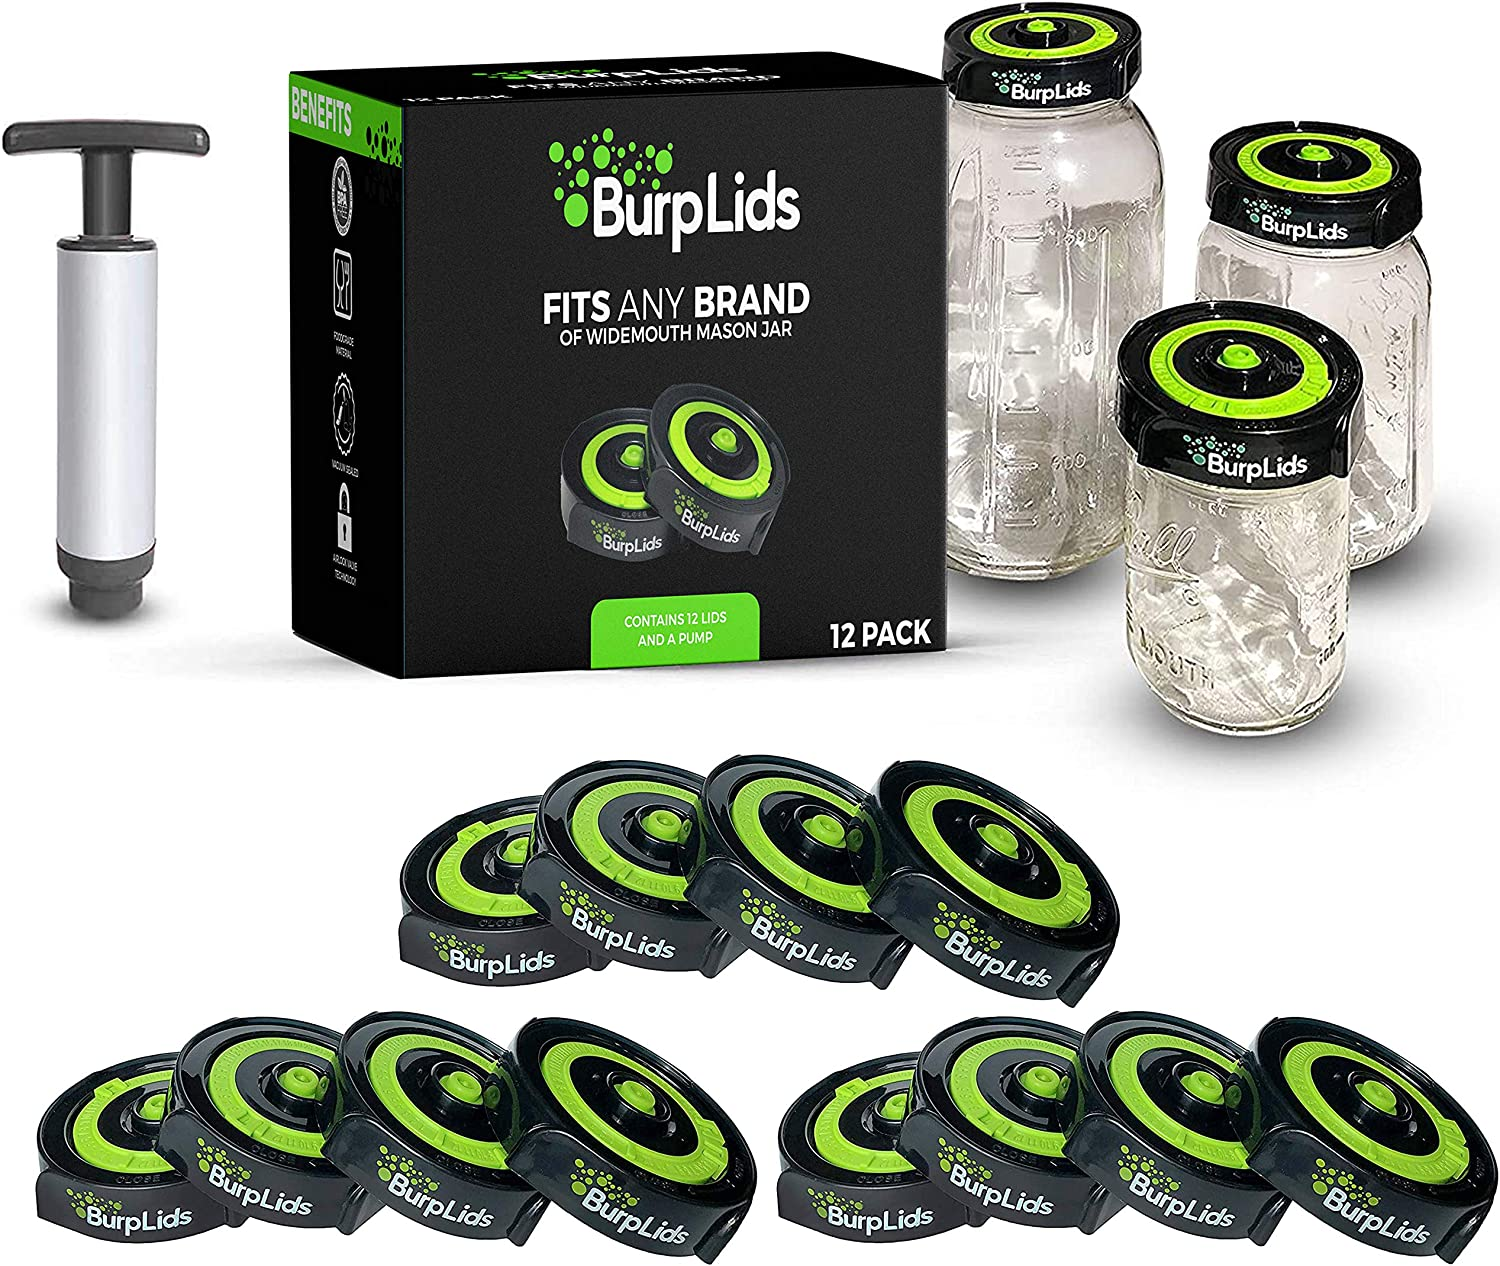 Burp Lids 12 Pack Curing Kit - Fits All Wide Mouth Mason Jar Containers - A Home Harvesting Essential. 12 lids + extraction pump. Vacuum sealed for successful cure.